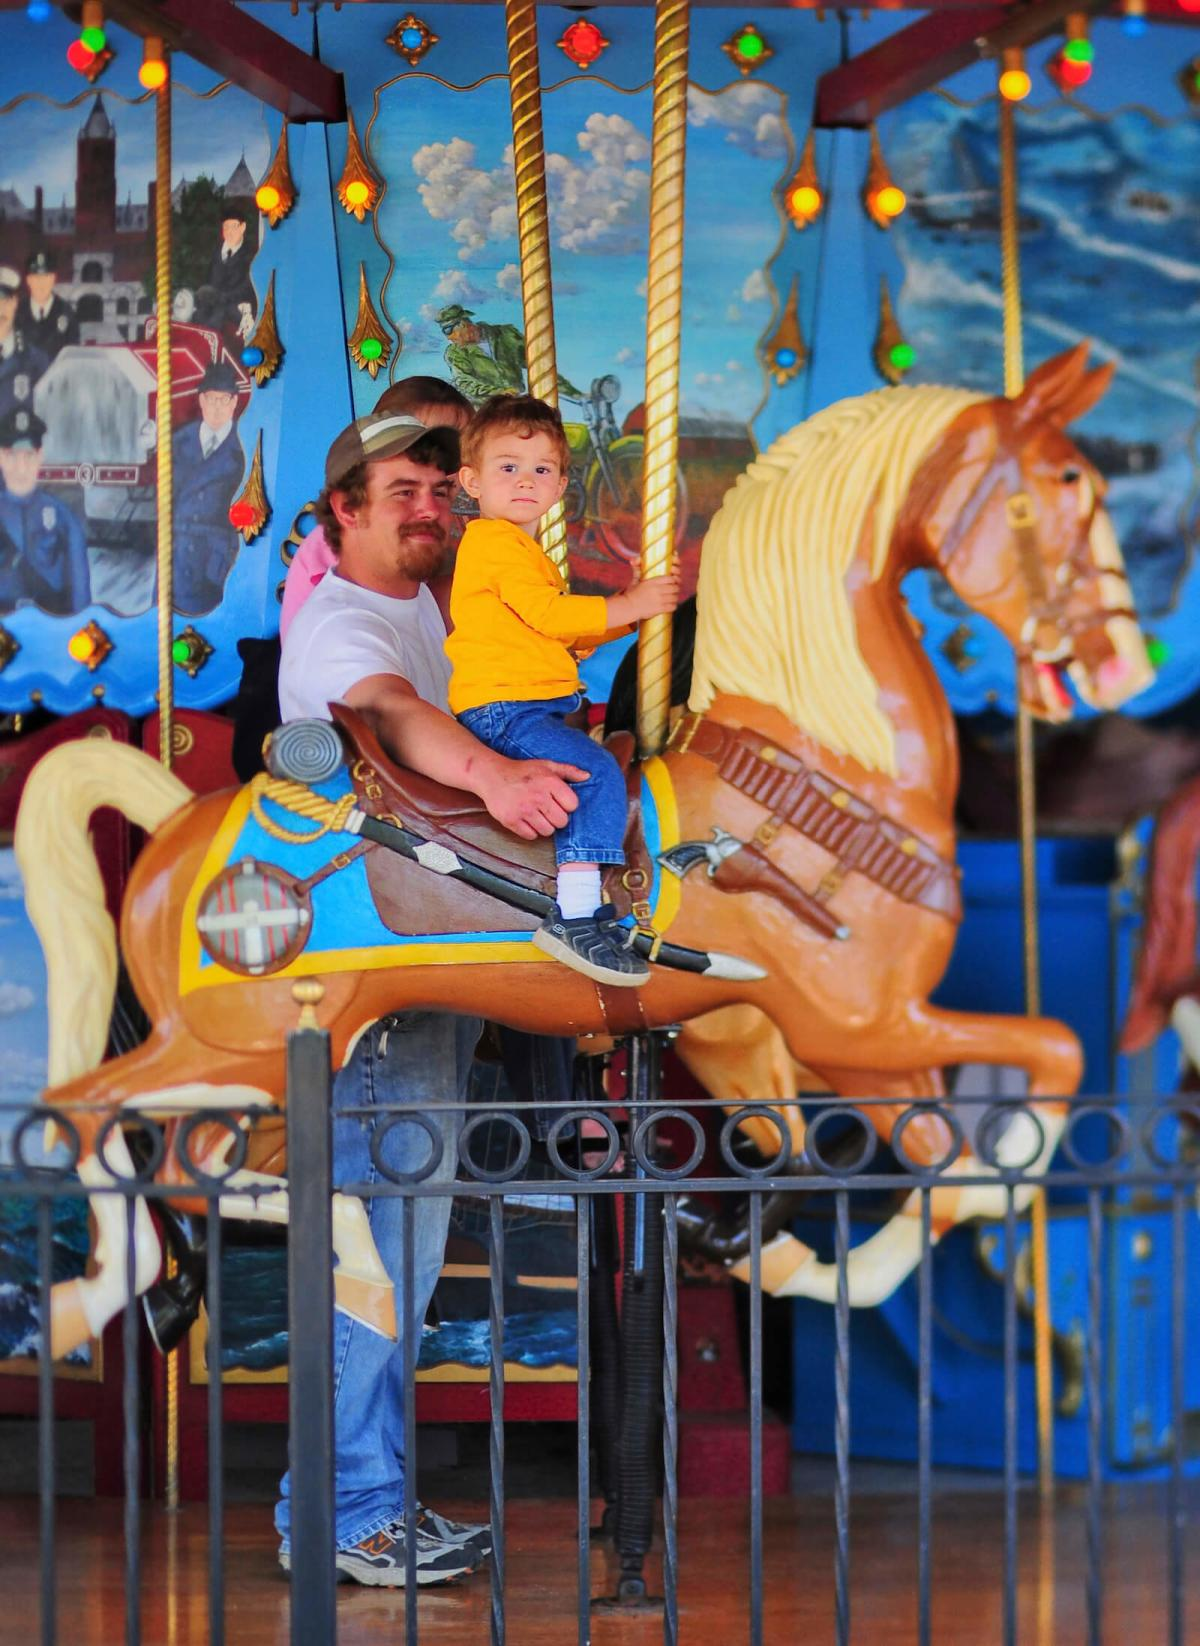 Dad and Son Riding the Carousel at Saginaw Children's Zoo